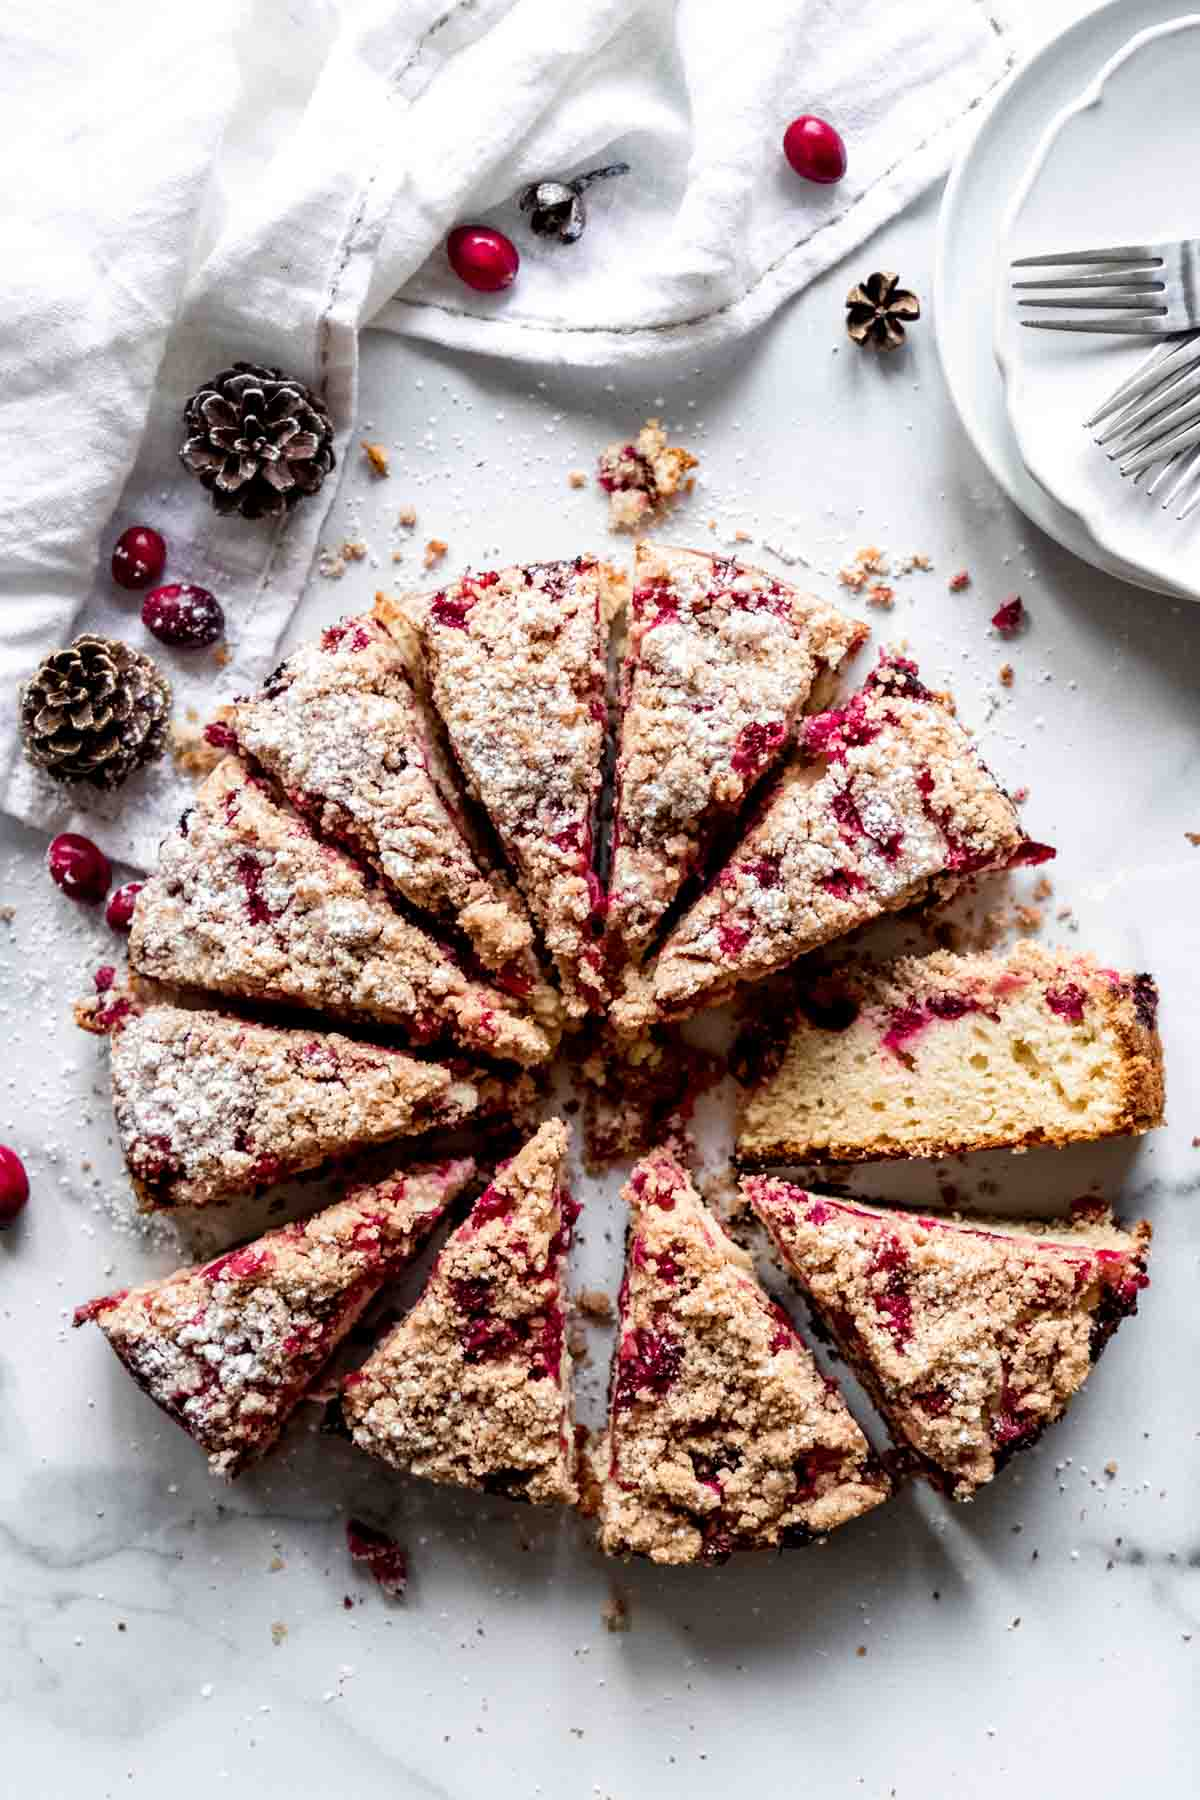 Cranberry crumb cake slices - perfect for holiday brunch!